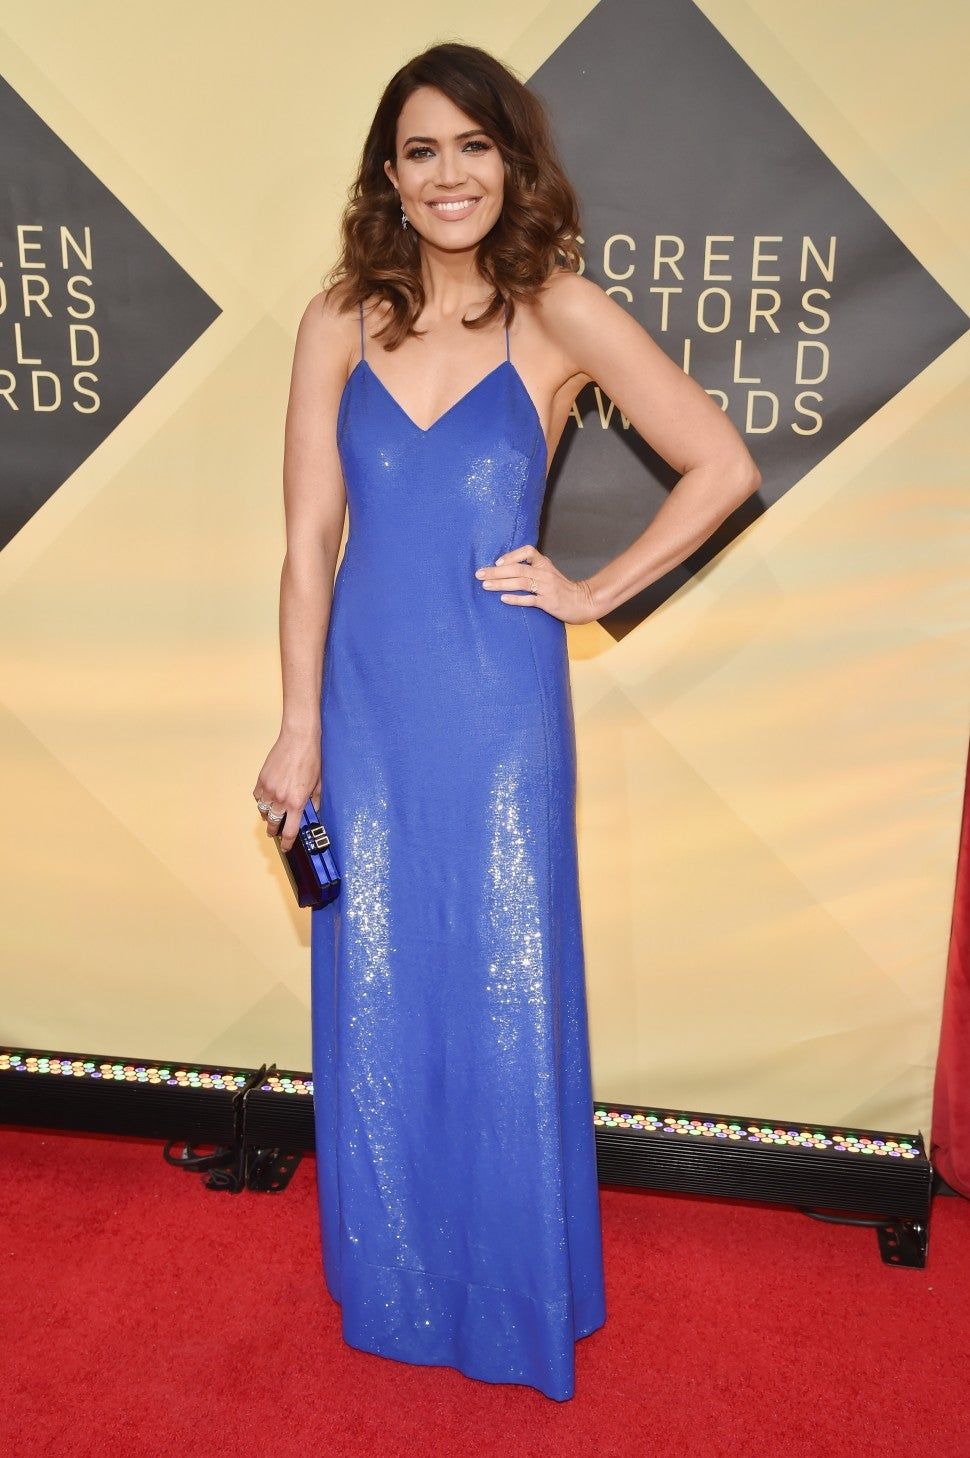 Mandy Moore at the 24th Annual Screen Actors Guild Awards